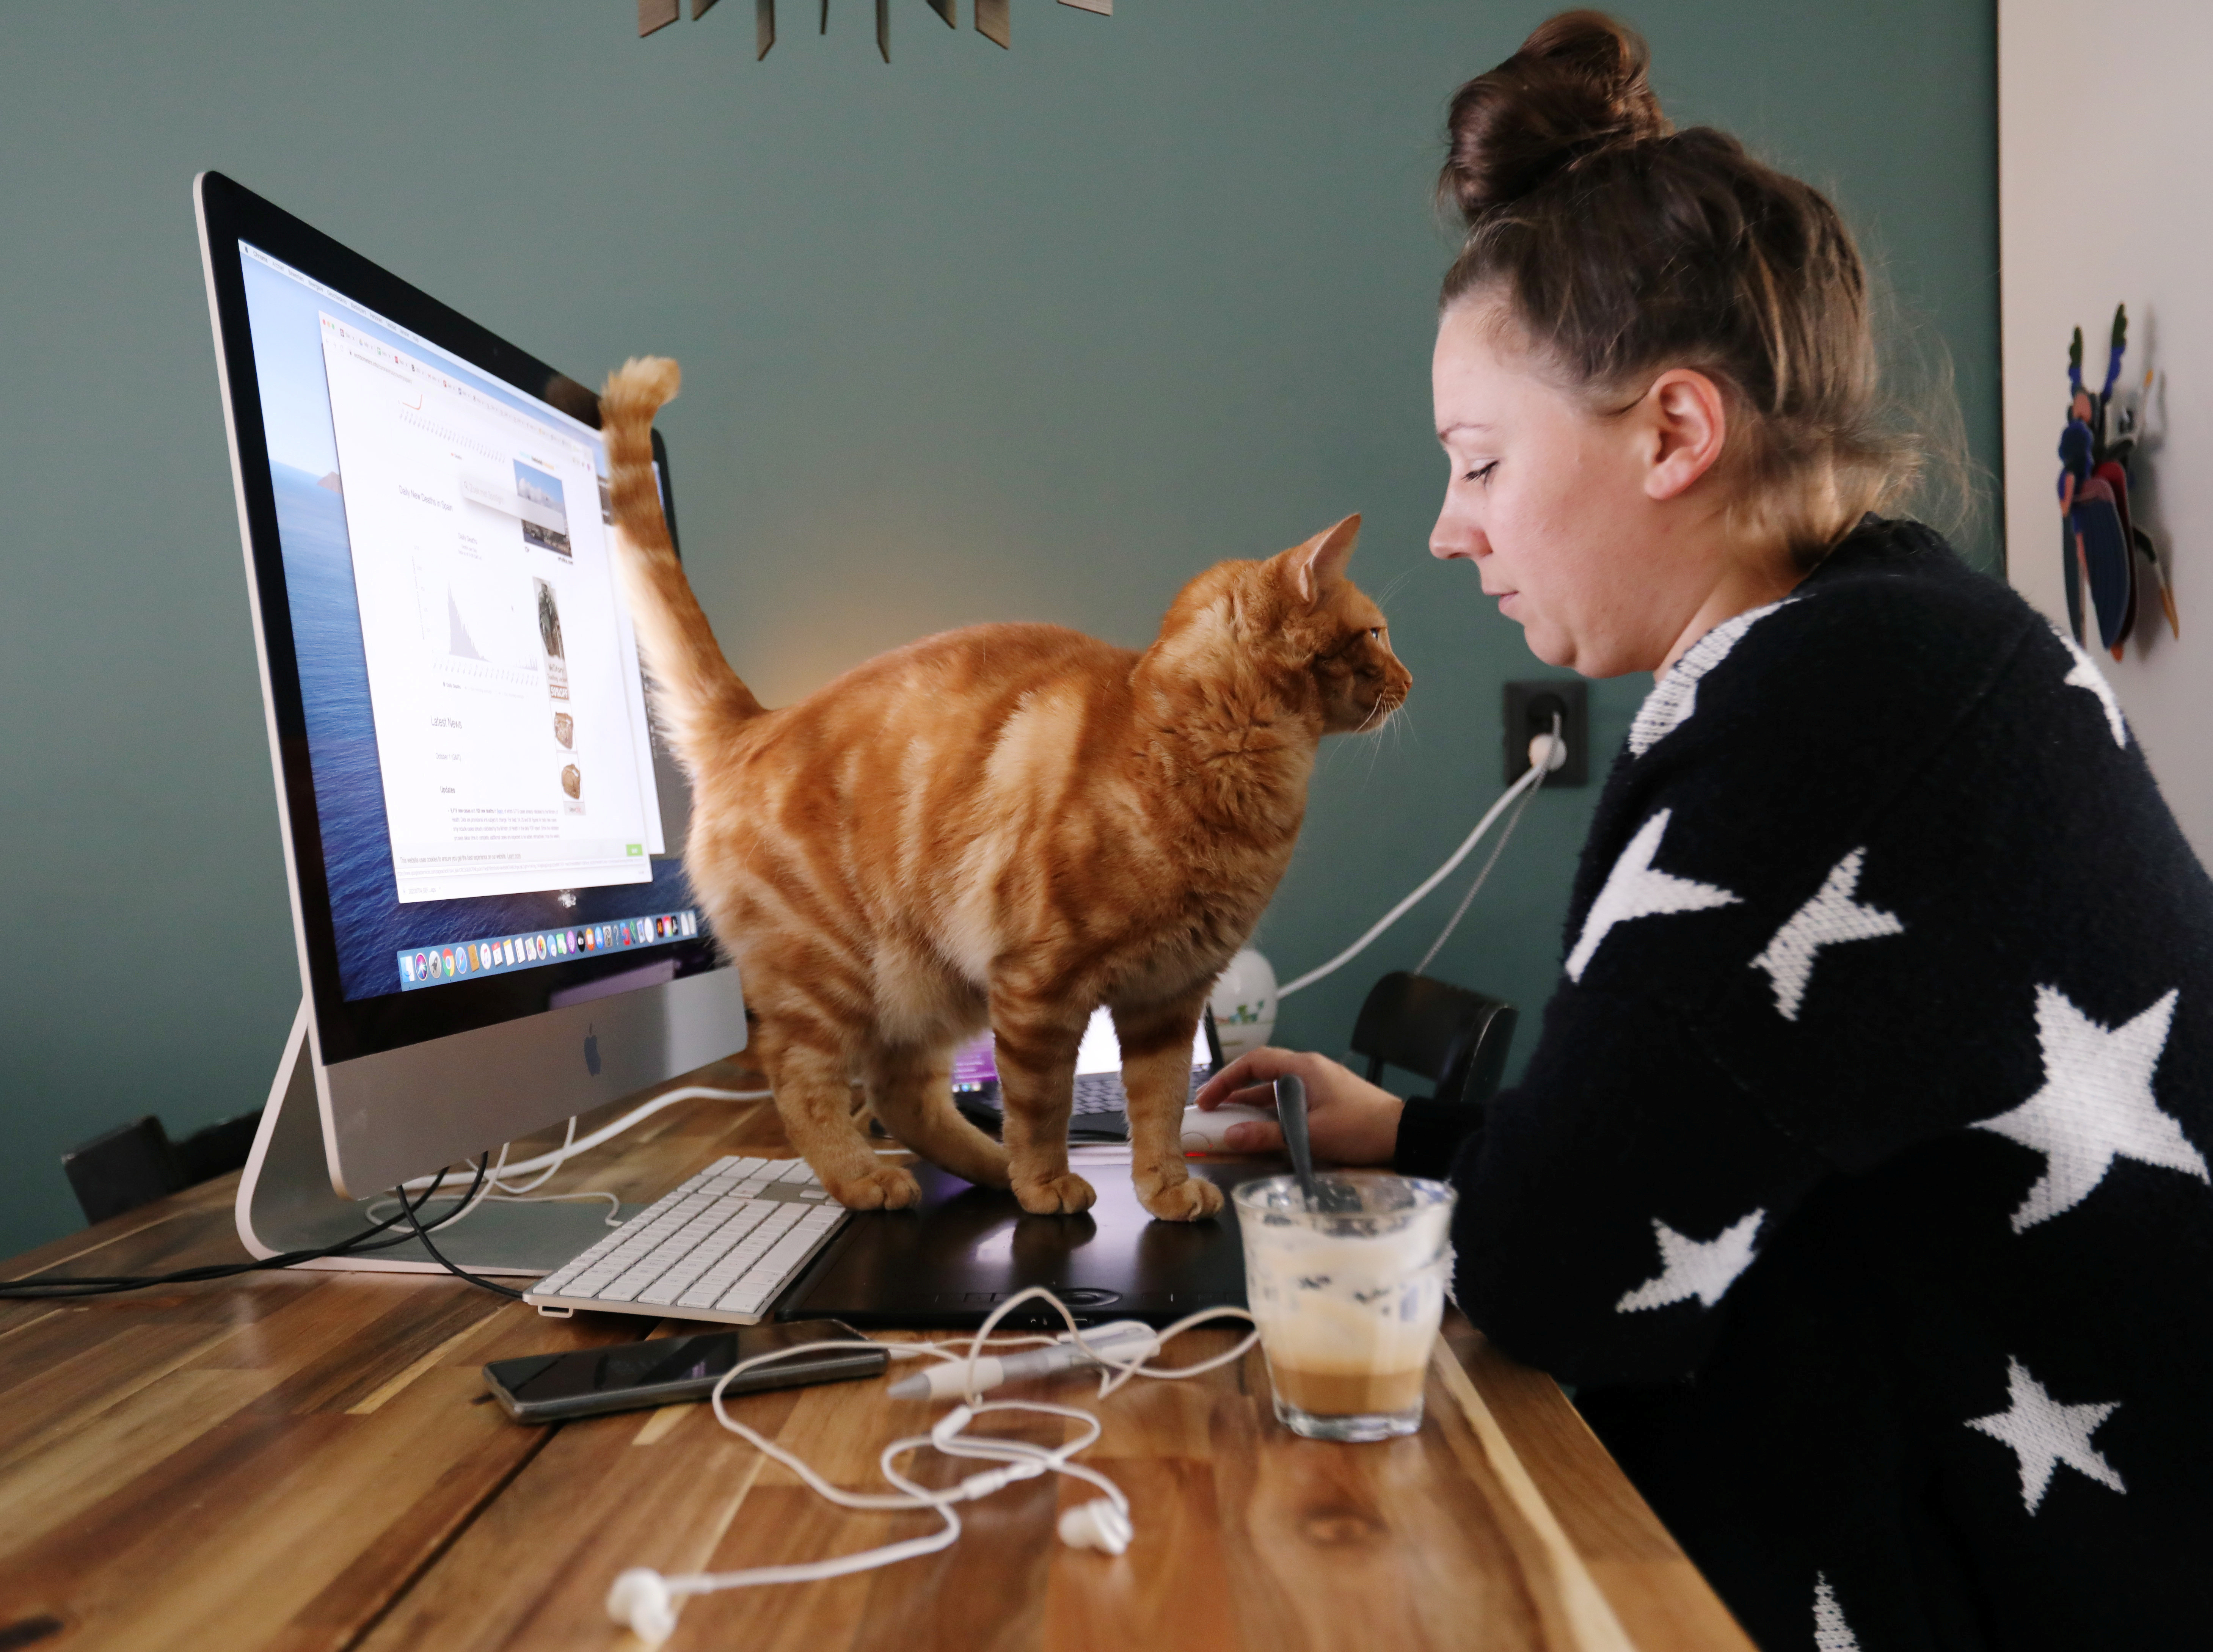 We asked you for working from home advice – these are your top 8 tips